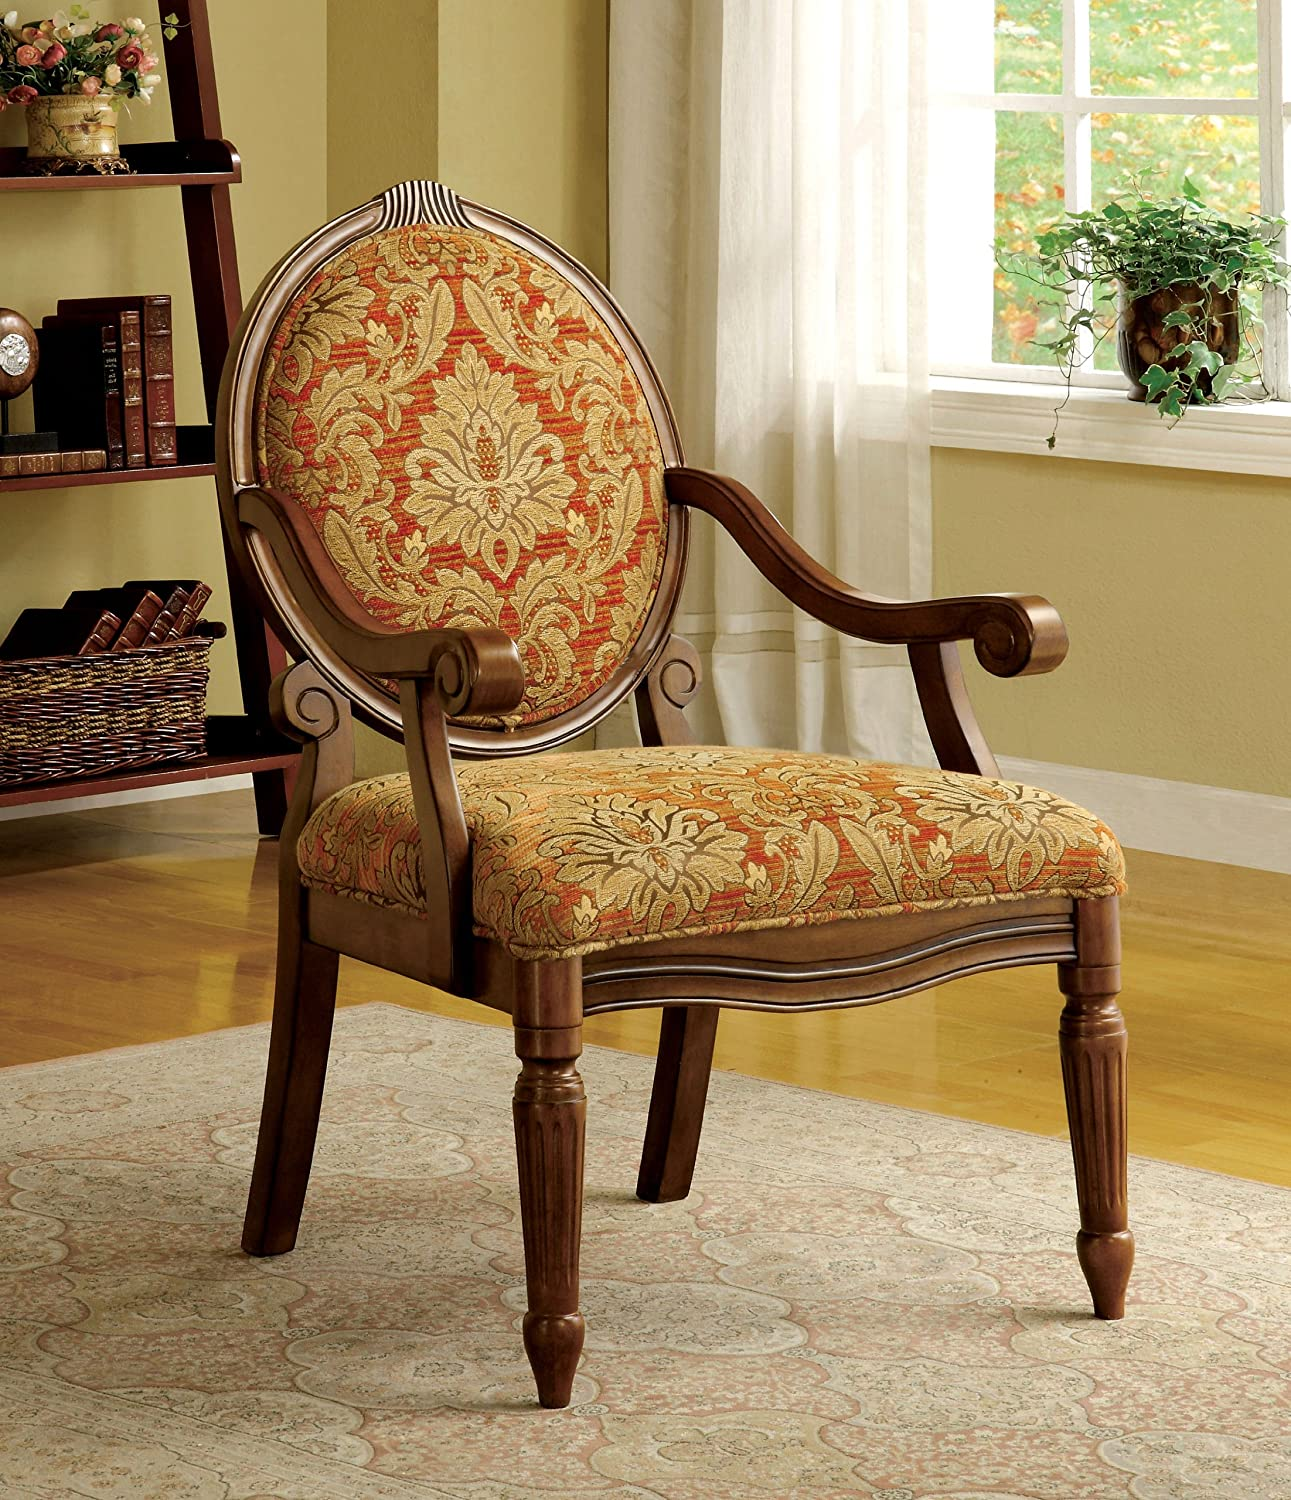 Amazon.com: Furniture Of America Gwyneth Victorian Style Padded Fabric Arm  Chair, Antique Oak Finish: Kitchen U0026 Dining